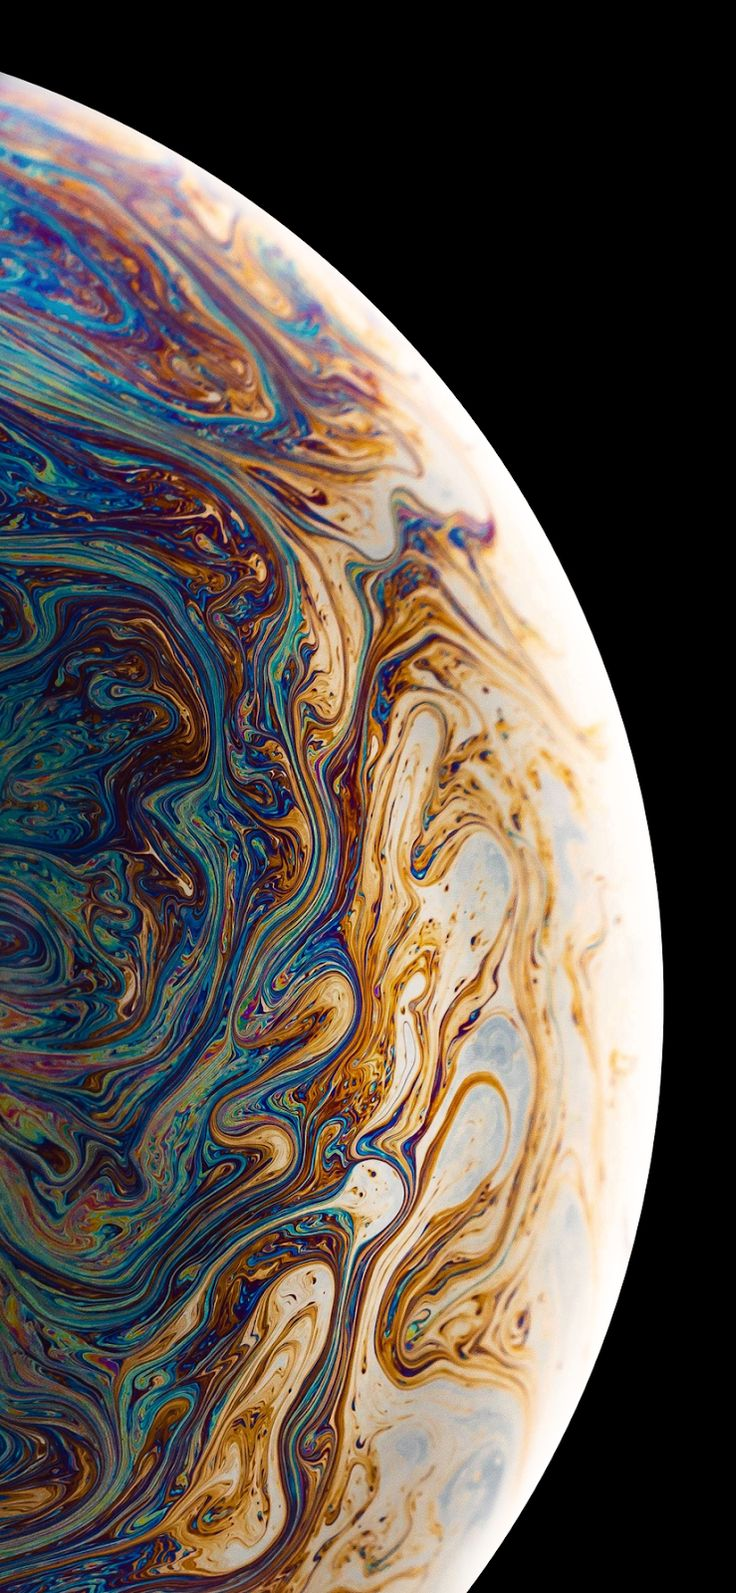 Download iPhone 11 Wallpapers & iPhone 11 Pro Wallpapers